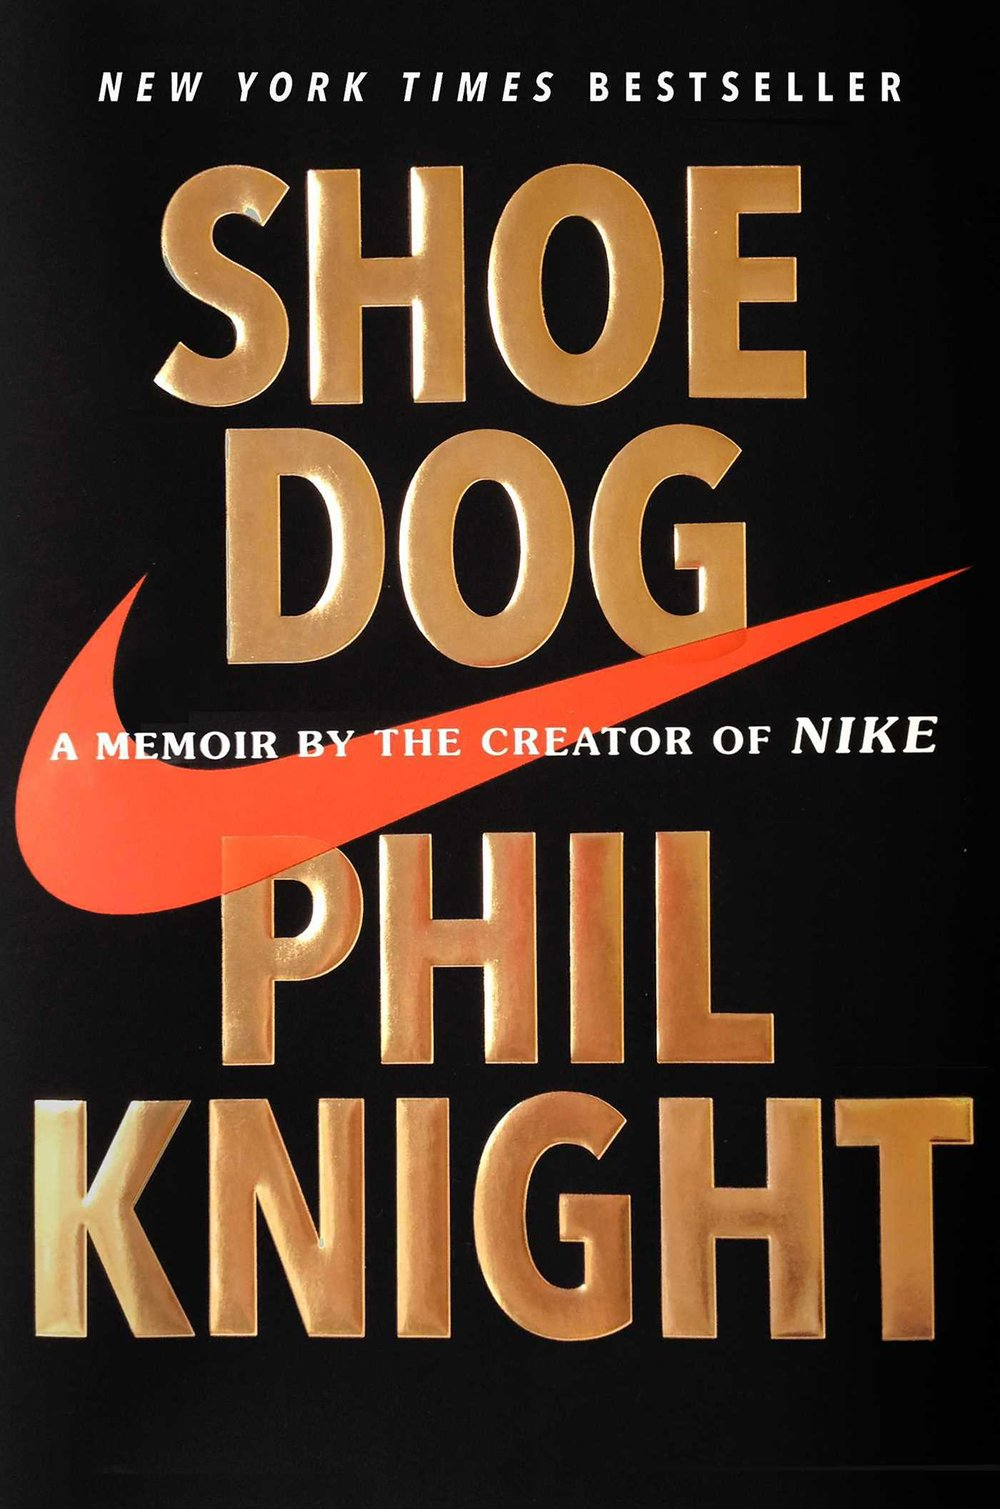 The story of Nike but more than anything, it's a story of never giving up and persevering at all costs to achieve your dreams.